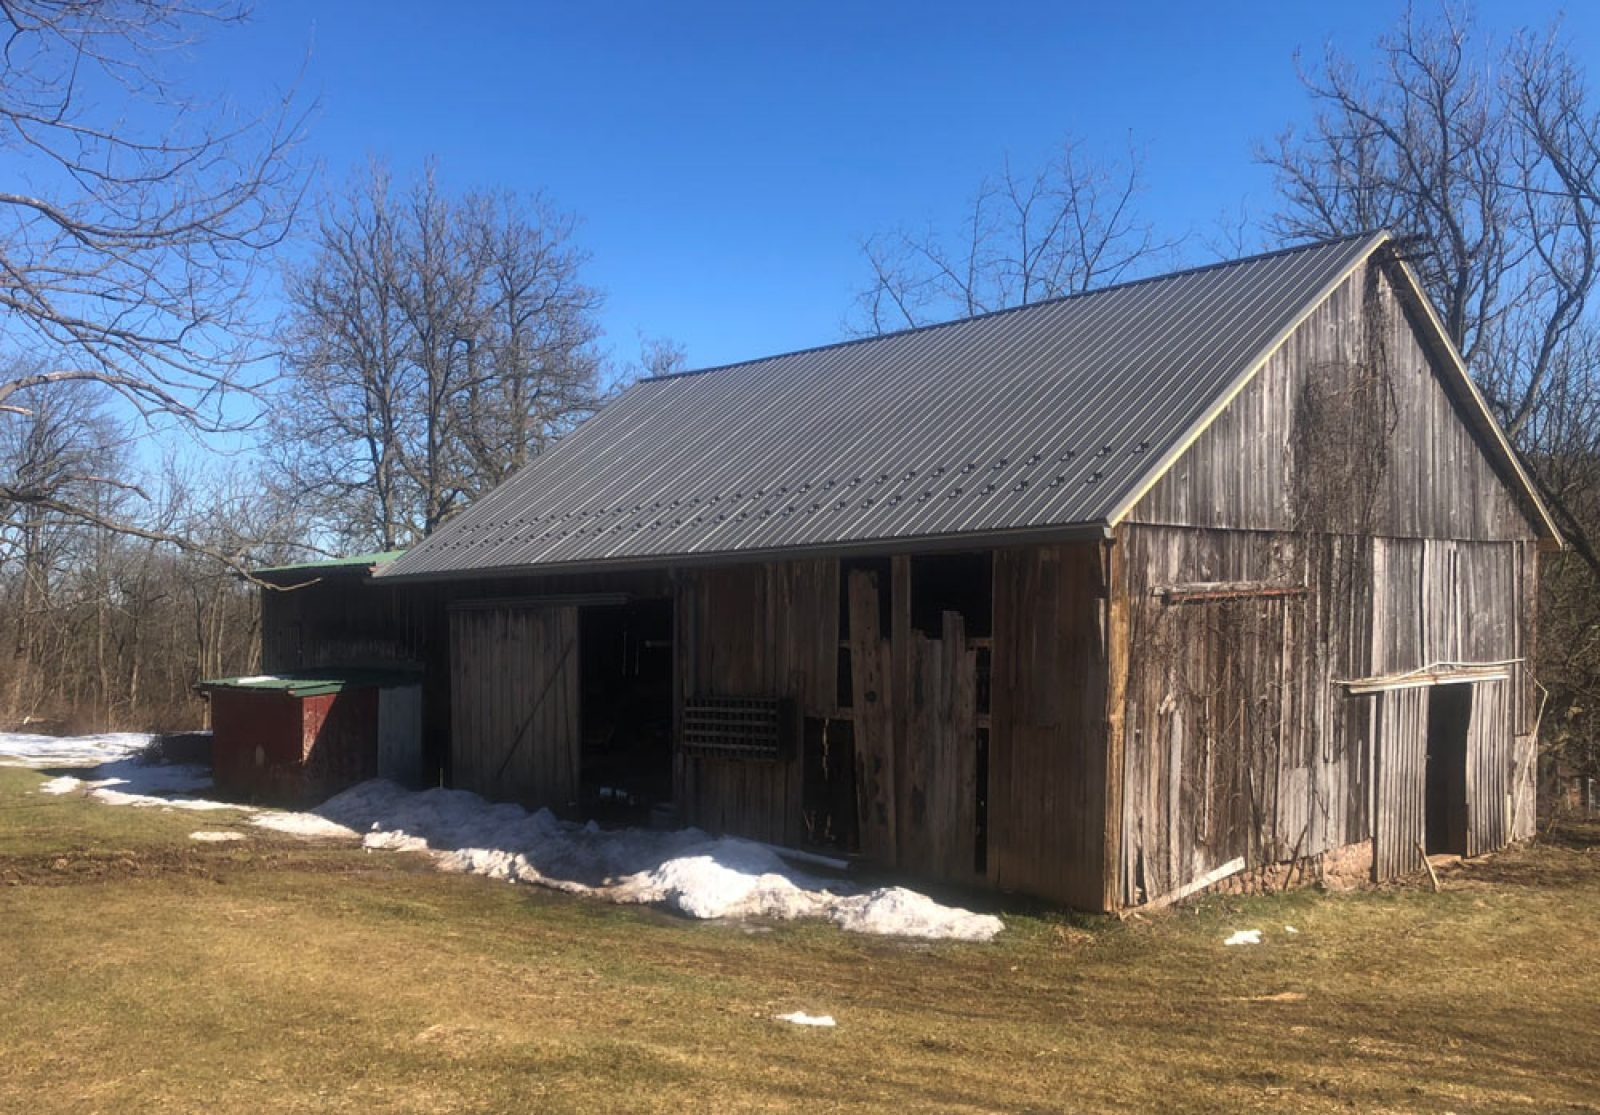 New Charcoal colored Metal Roofing Job on an old barn in Elverson, PA